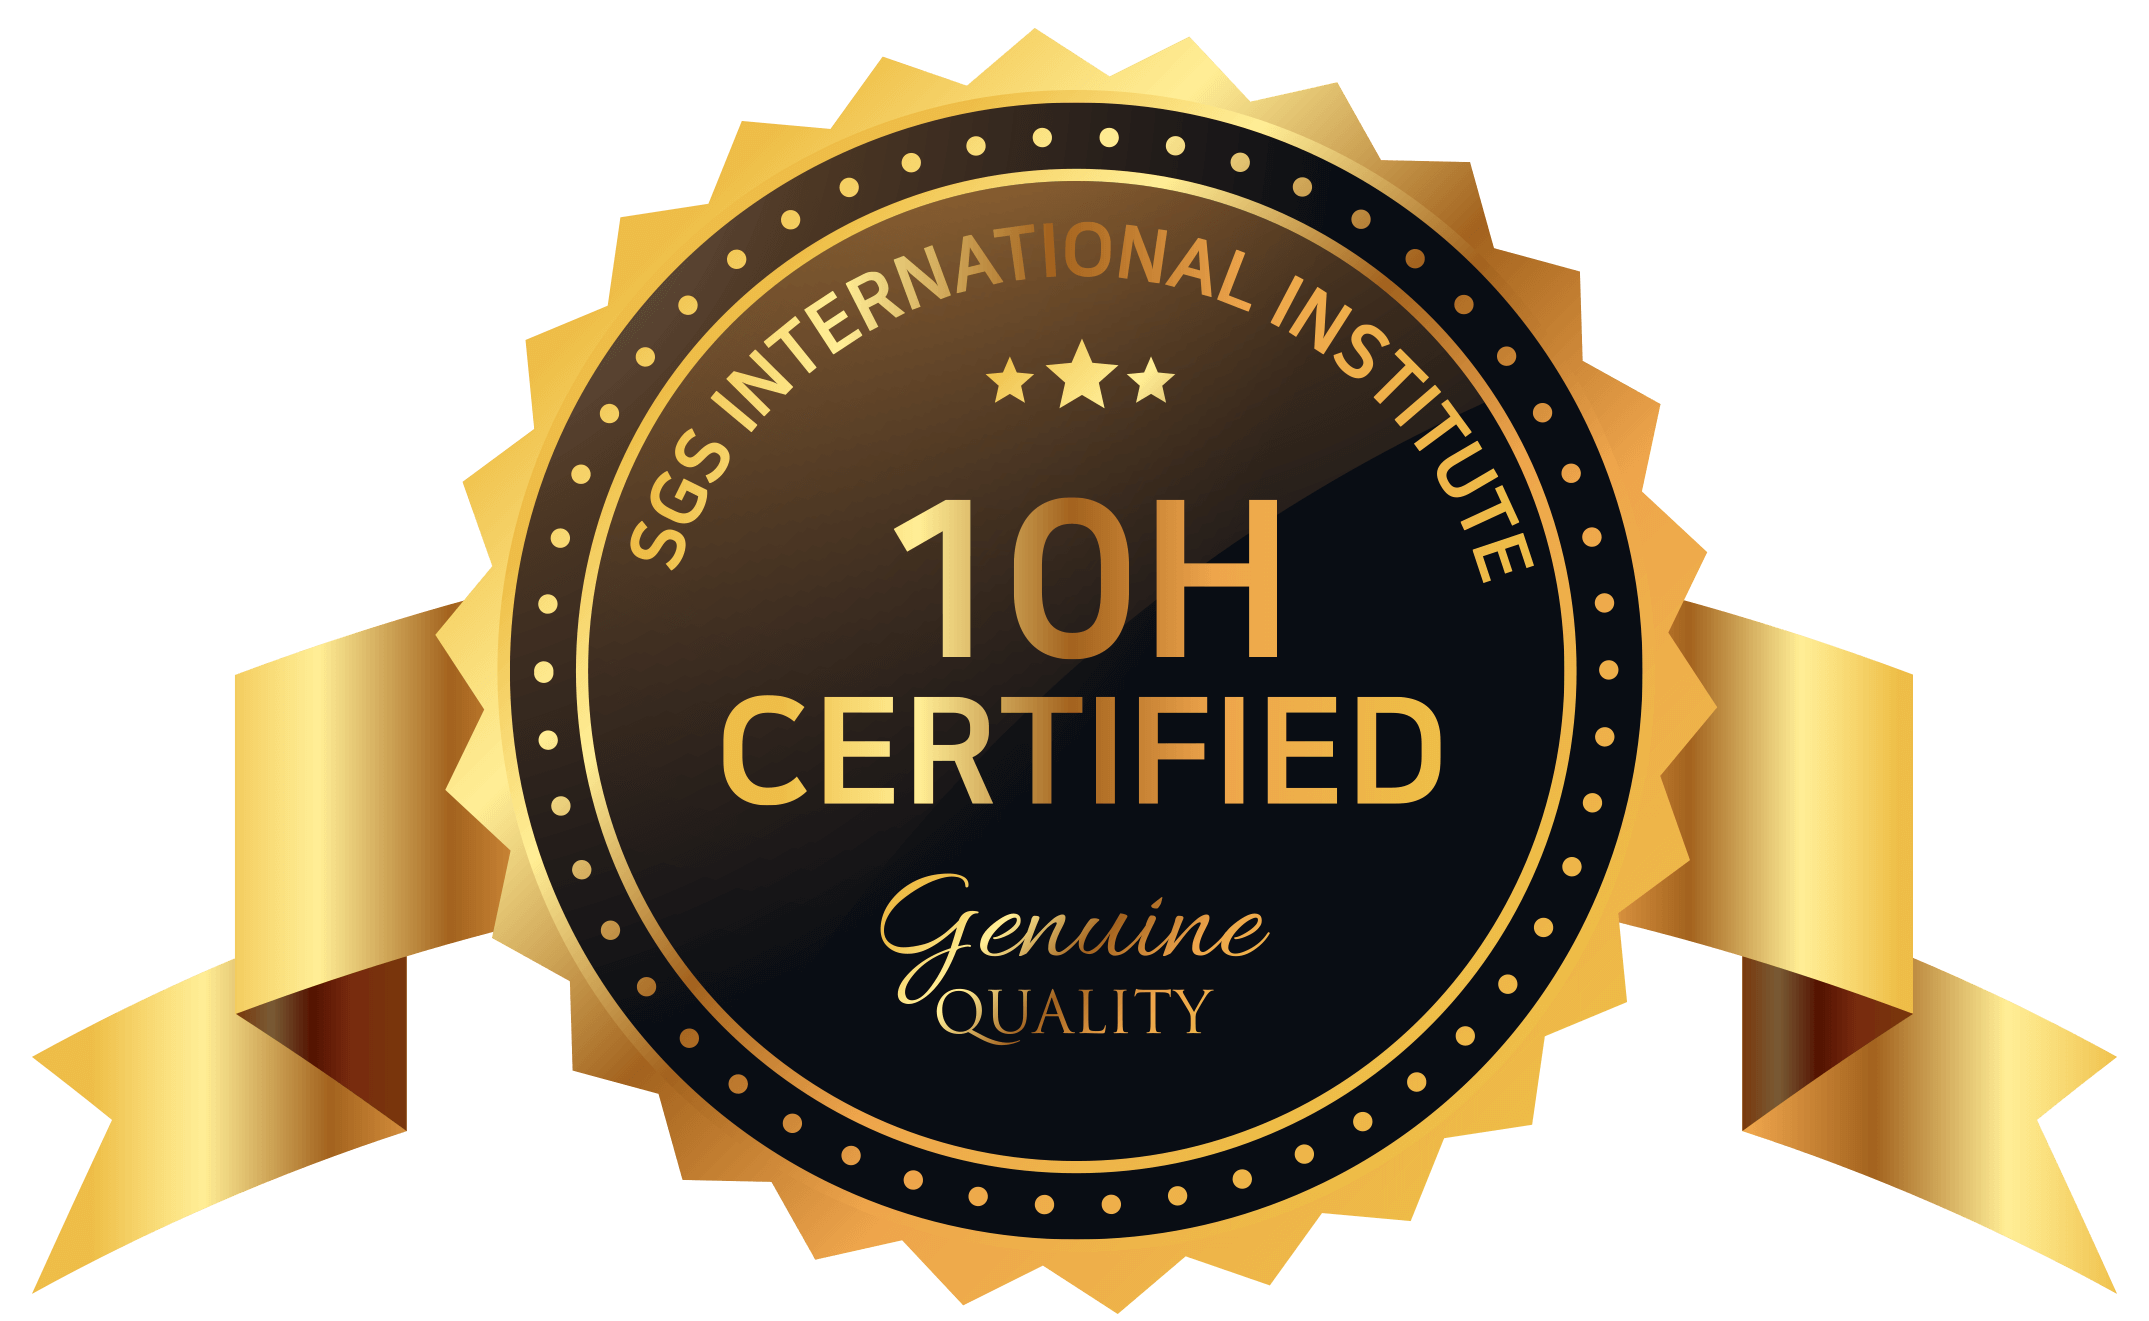 View 10H Ceramic Coating Certificate